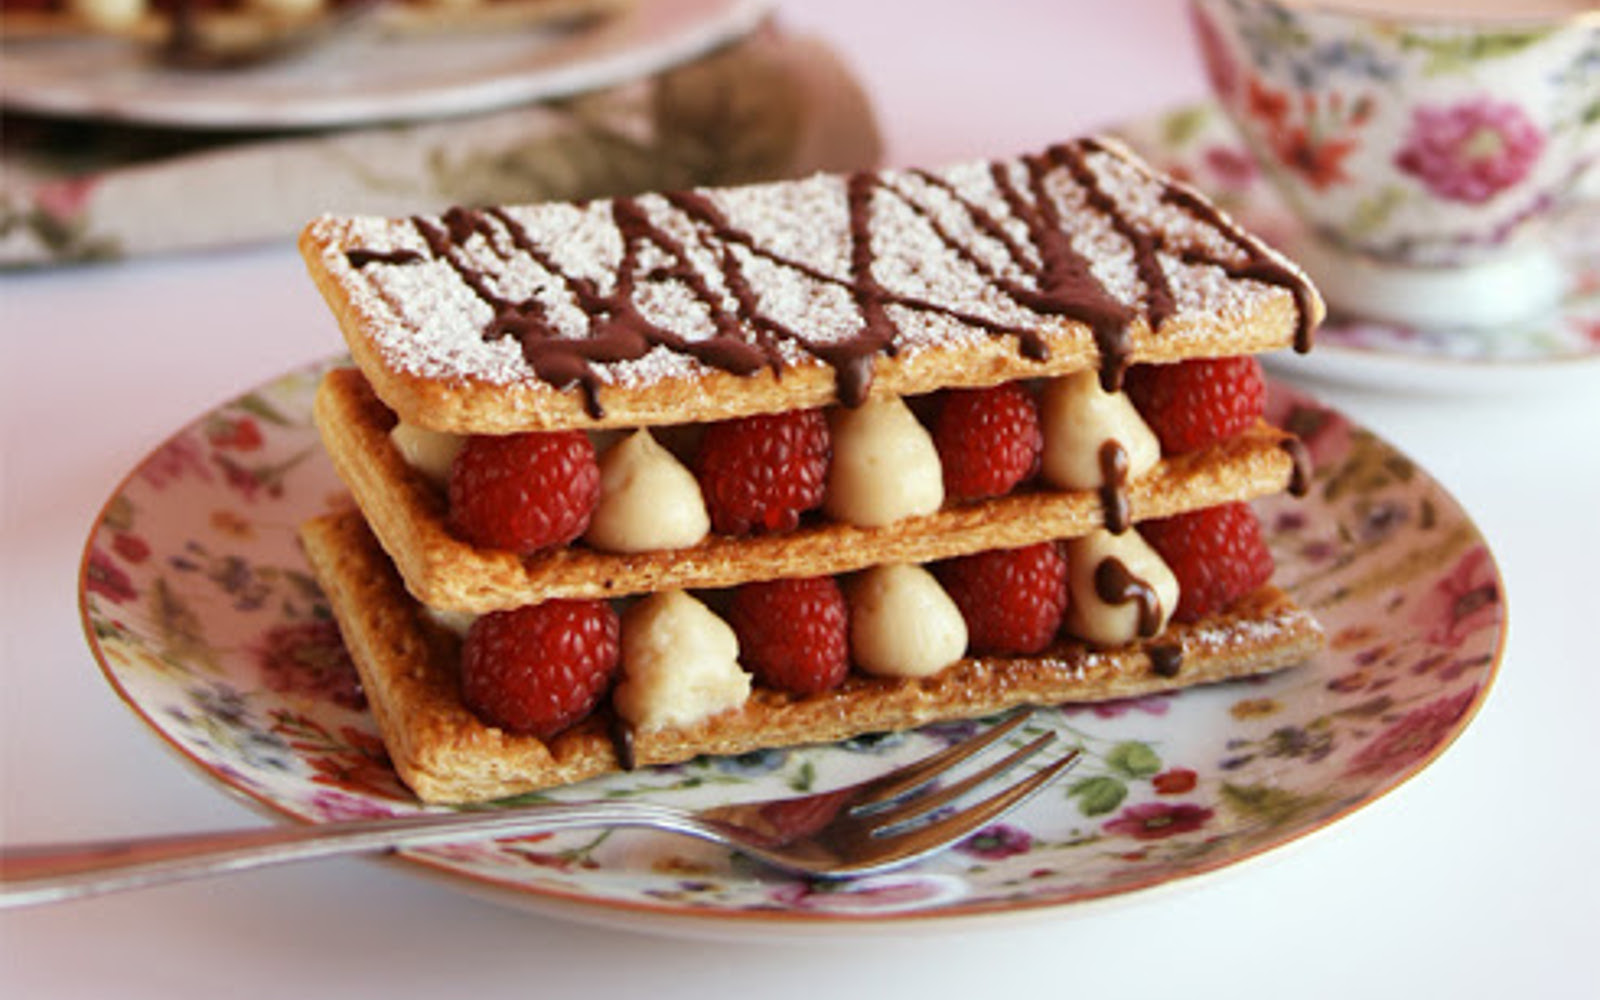 Raspberry Millefeuille With Lemon Pastry Cream